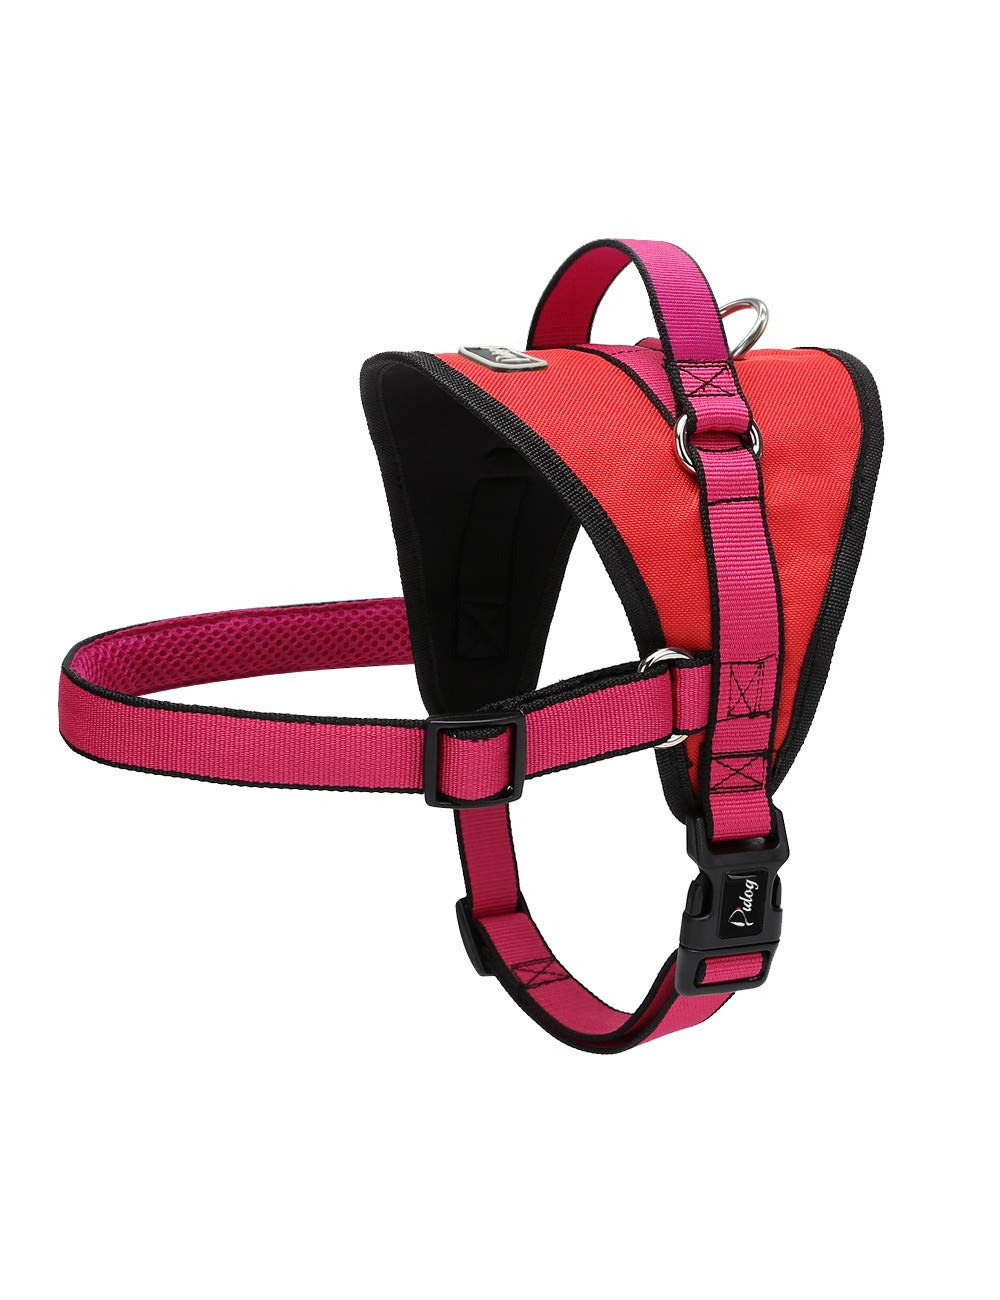 Pink XL Pink XL XQQX Pet Leashnylon Harness For Medium Large Pet No Pull Soft Harness Vest With Quick Fit Handle For Walking Training